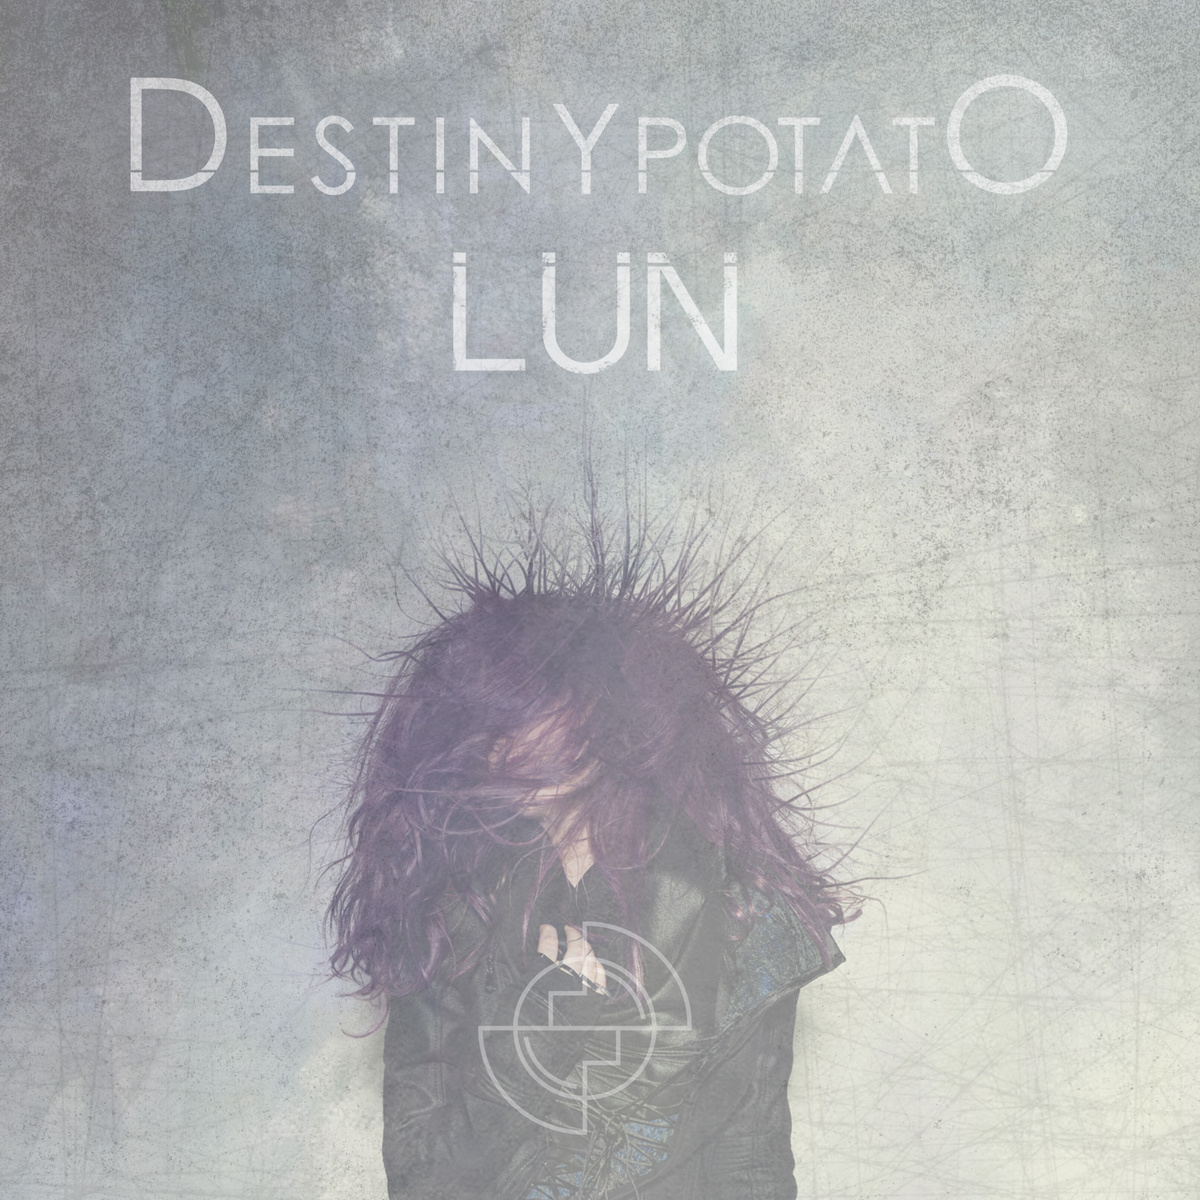 Destiny-Potato-Lun-album-art